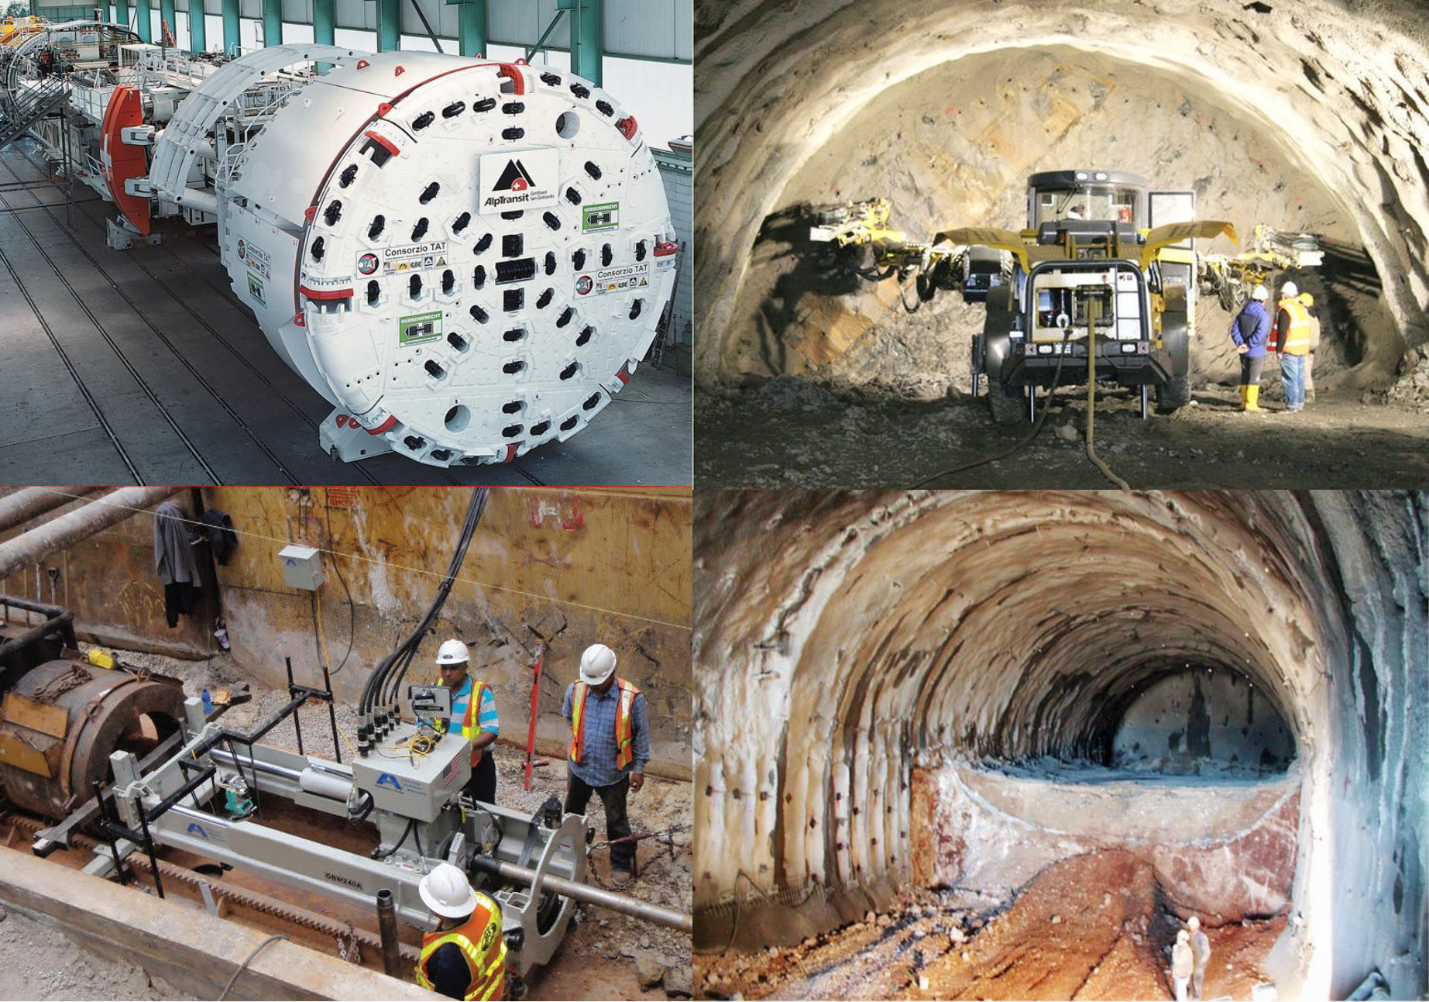 Tunneling methods (clockwise from top left): TBM, Drill and Blast, SEM and MTBM. Images obtained from Heitkampt-swiss.ch, Akkerman.com and Hoek et al., 2007.